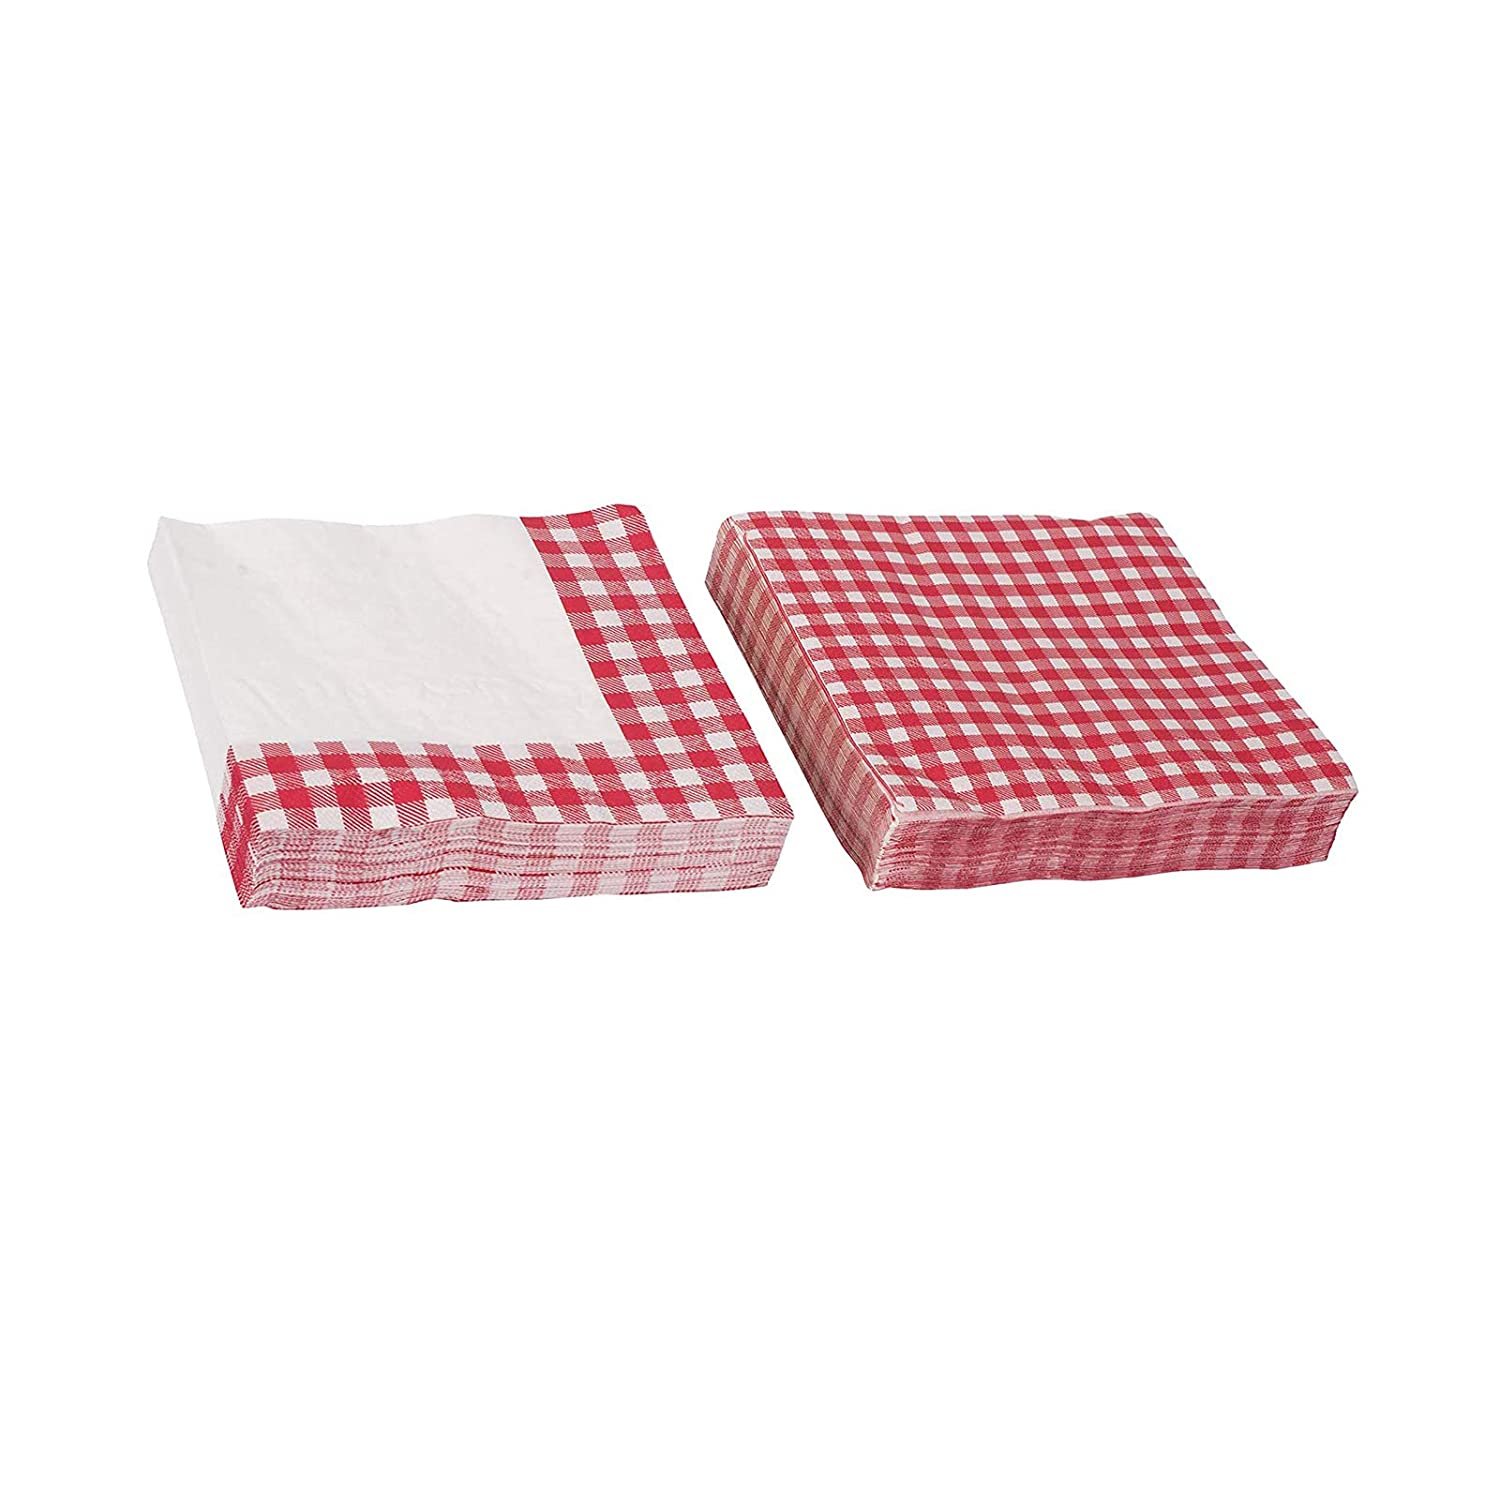 Picnic Themed Gingham Napkins Tableware - Perfect for Family Dinner, Birthday Parties and Picnic Party Supplies (80 Pack)